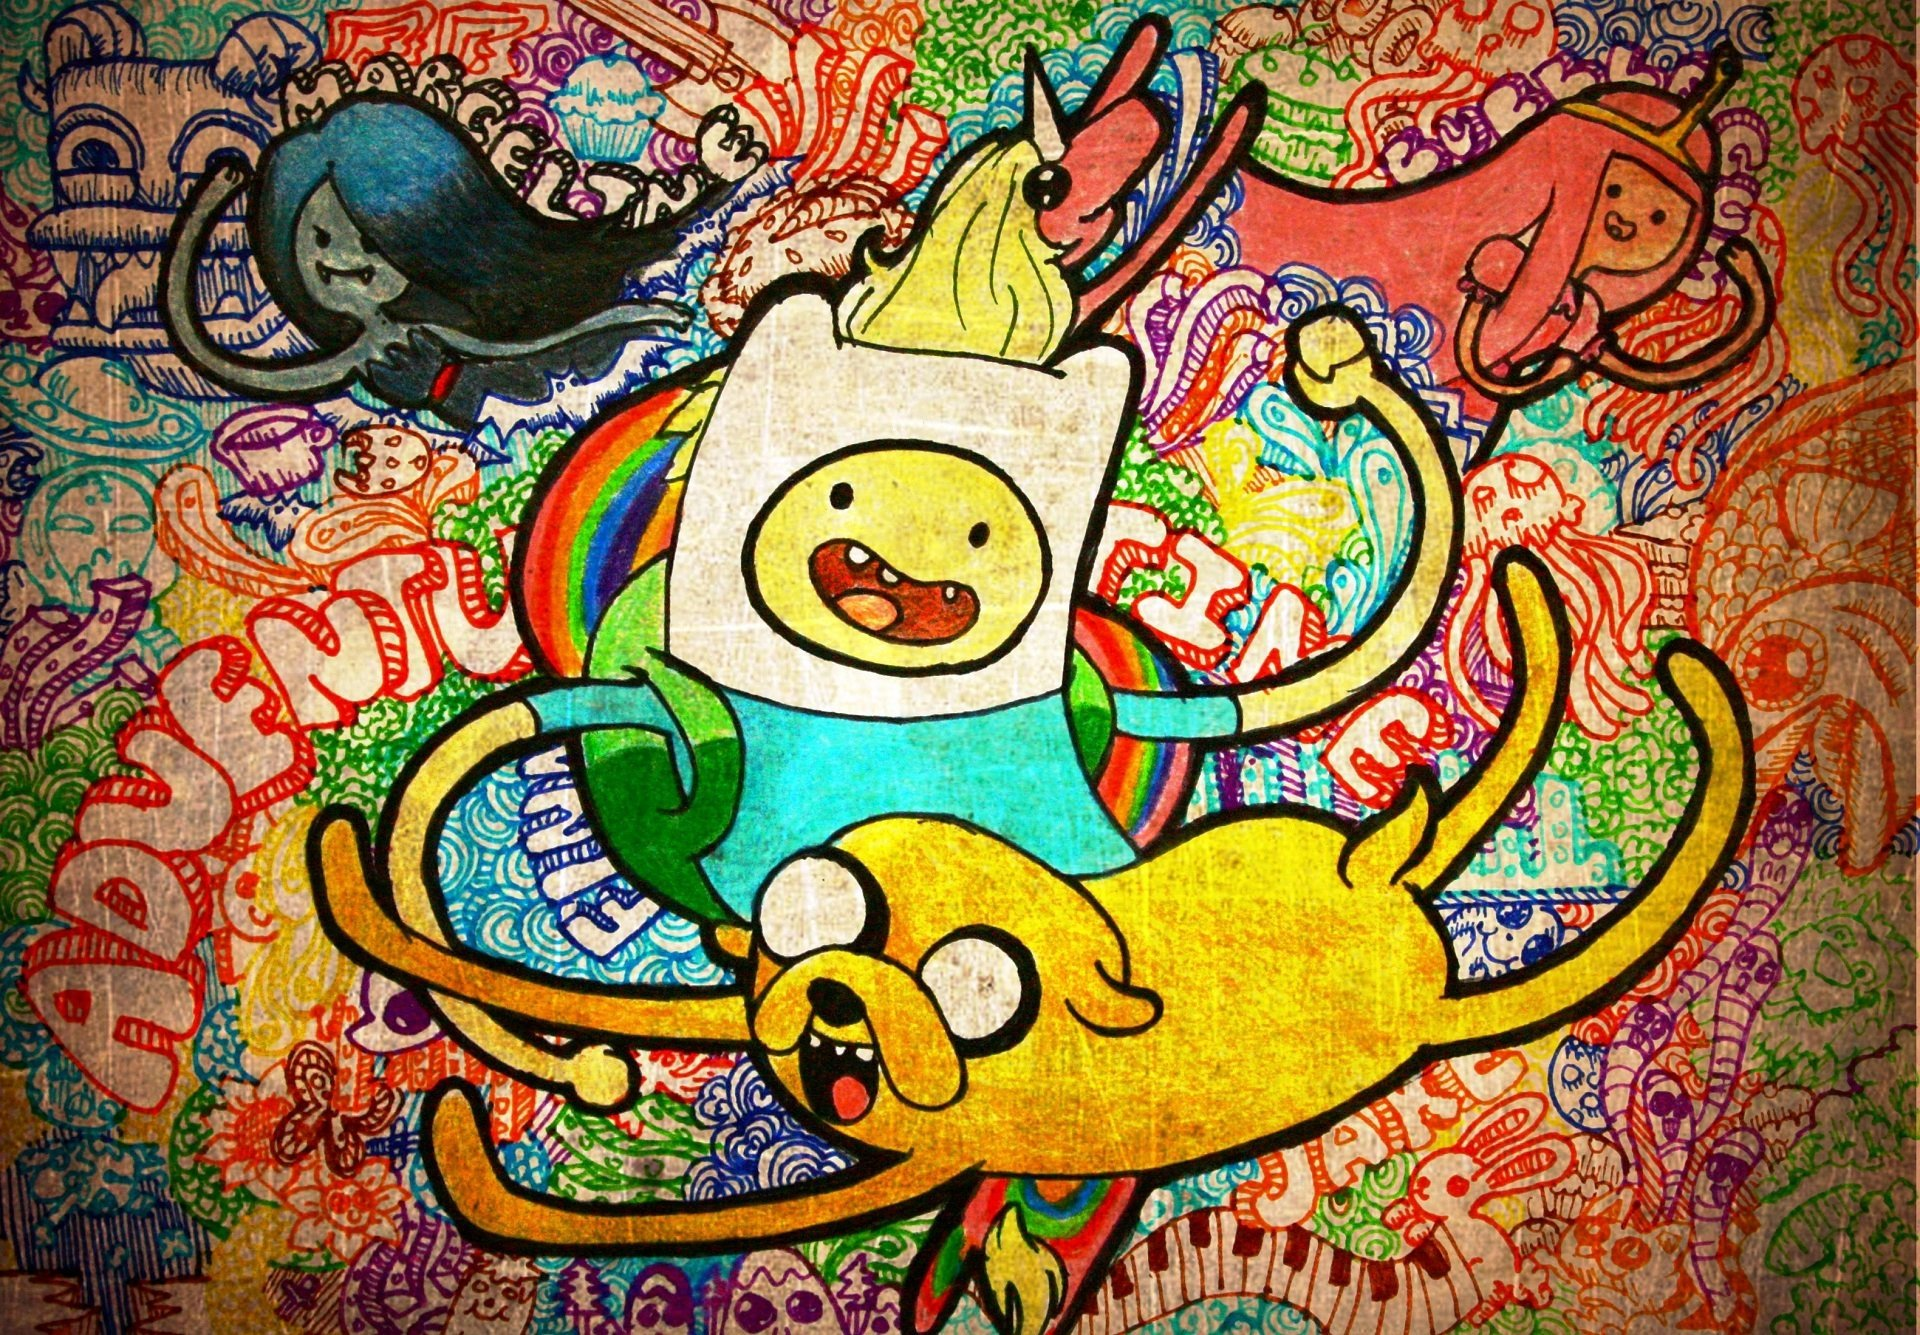 336 Adventure Time Hd Wallpapers Background Images Wallpaper Abyss